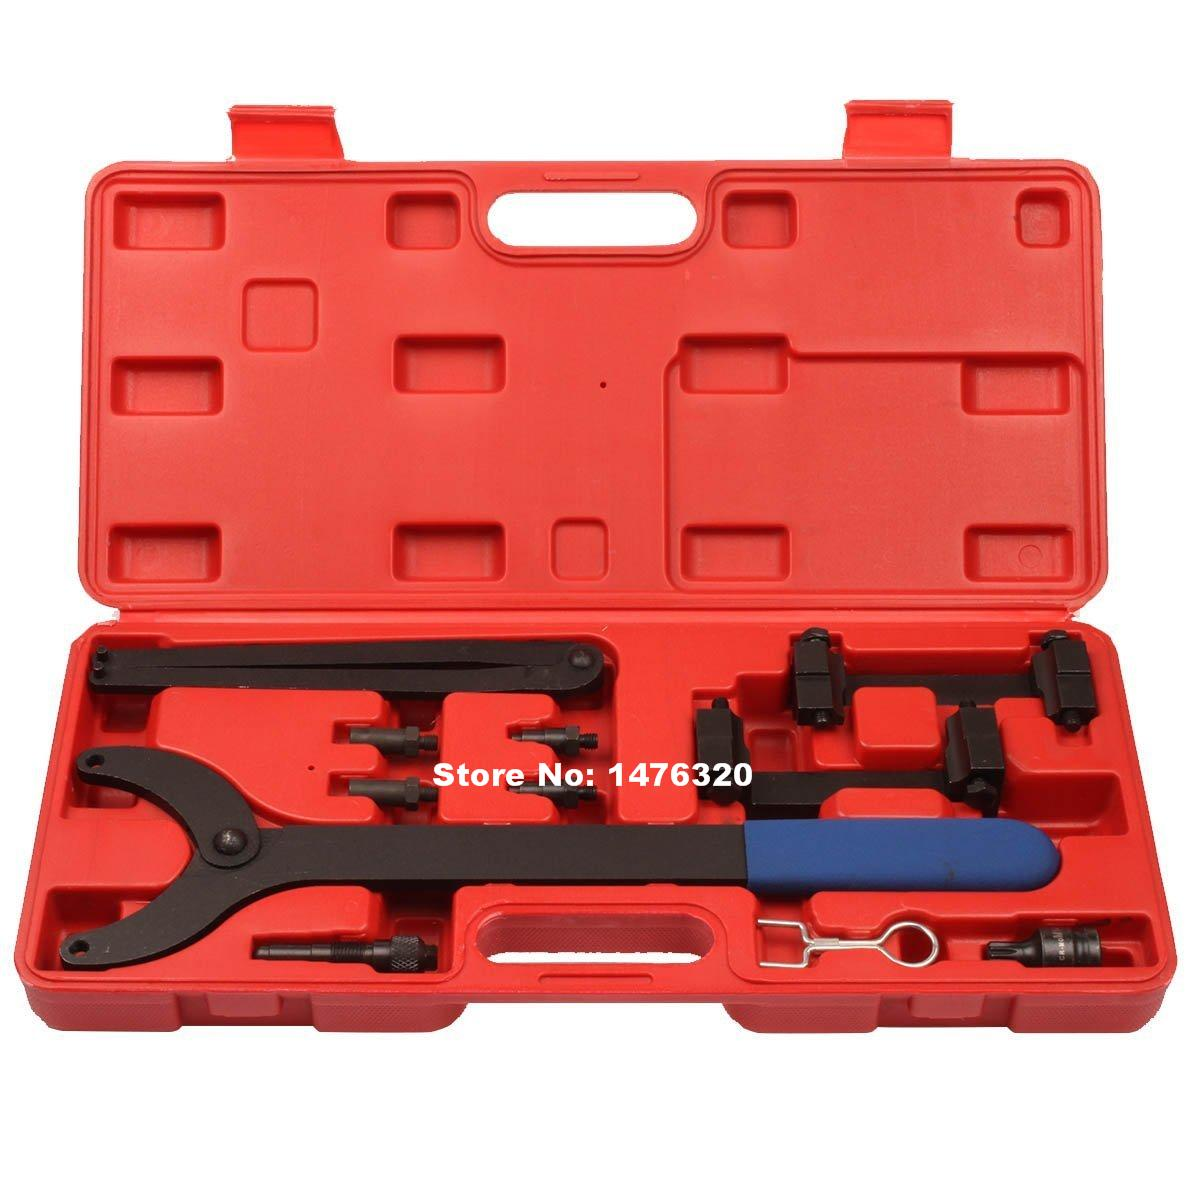 Automotive Engine Timing Camshaft Locking Alignment Tool Kit For VW Audi A4 A6 A8 3.2L V6 FSI AT2169 vag 1 8 2 0 tsi tfsi ea888 engine timing tool set for vw audi t10352 t40196 t40271 t10368 t10354